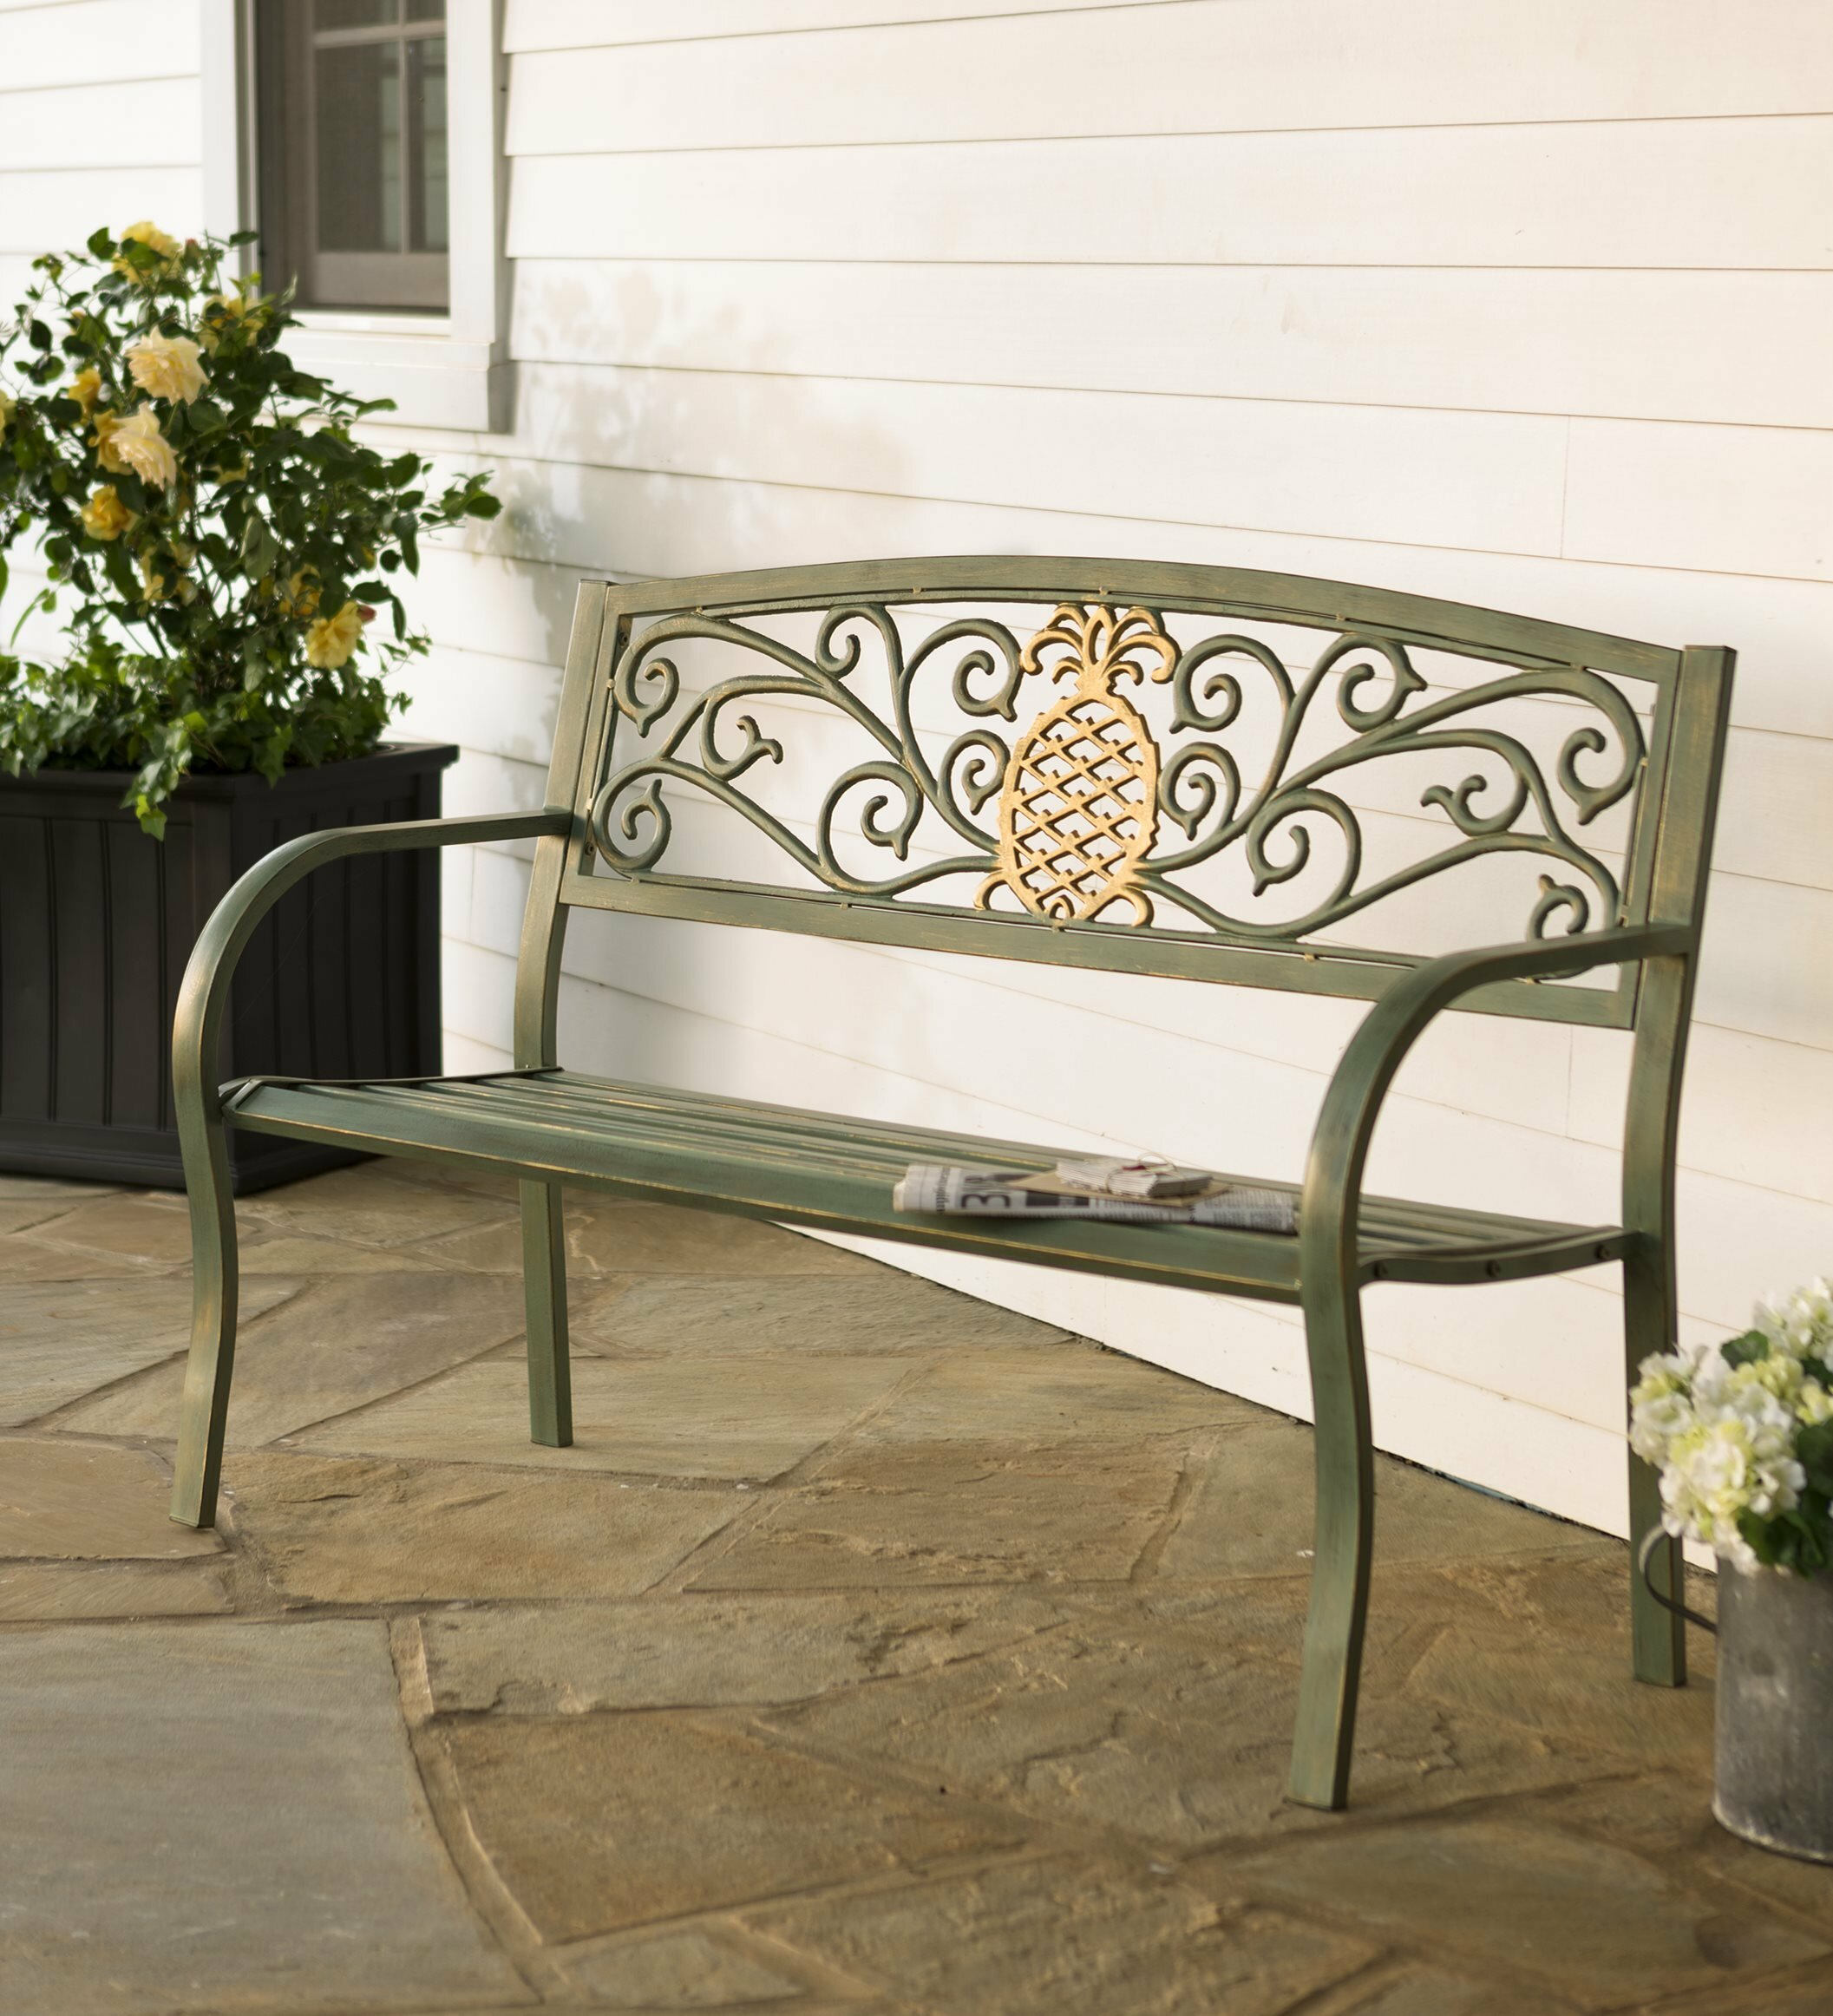 Pineapple Metal Garden Bench Pertaining To Michelle Metal Garden Benches (View 18 of 25)